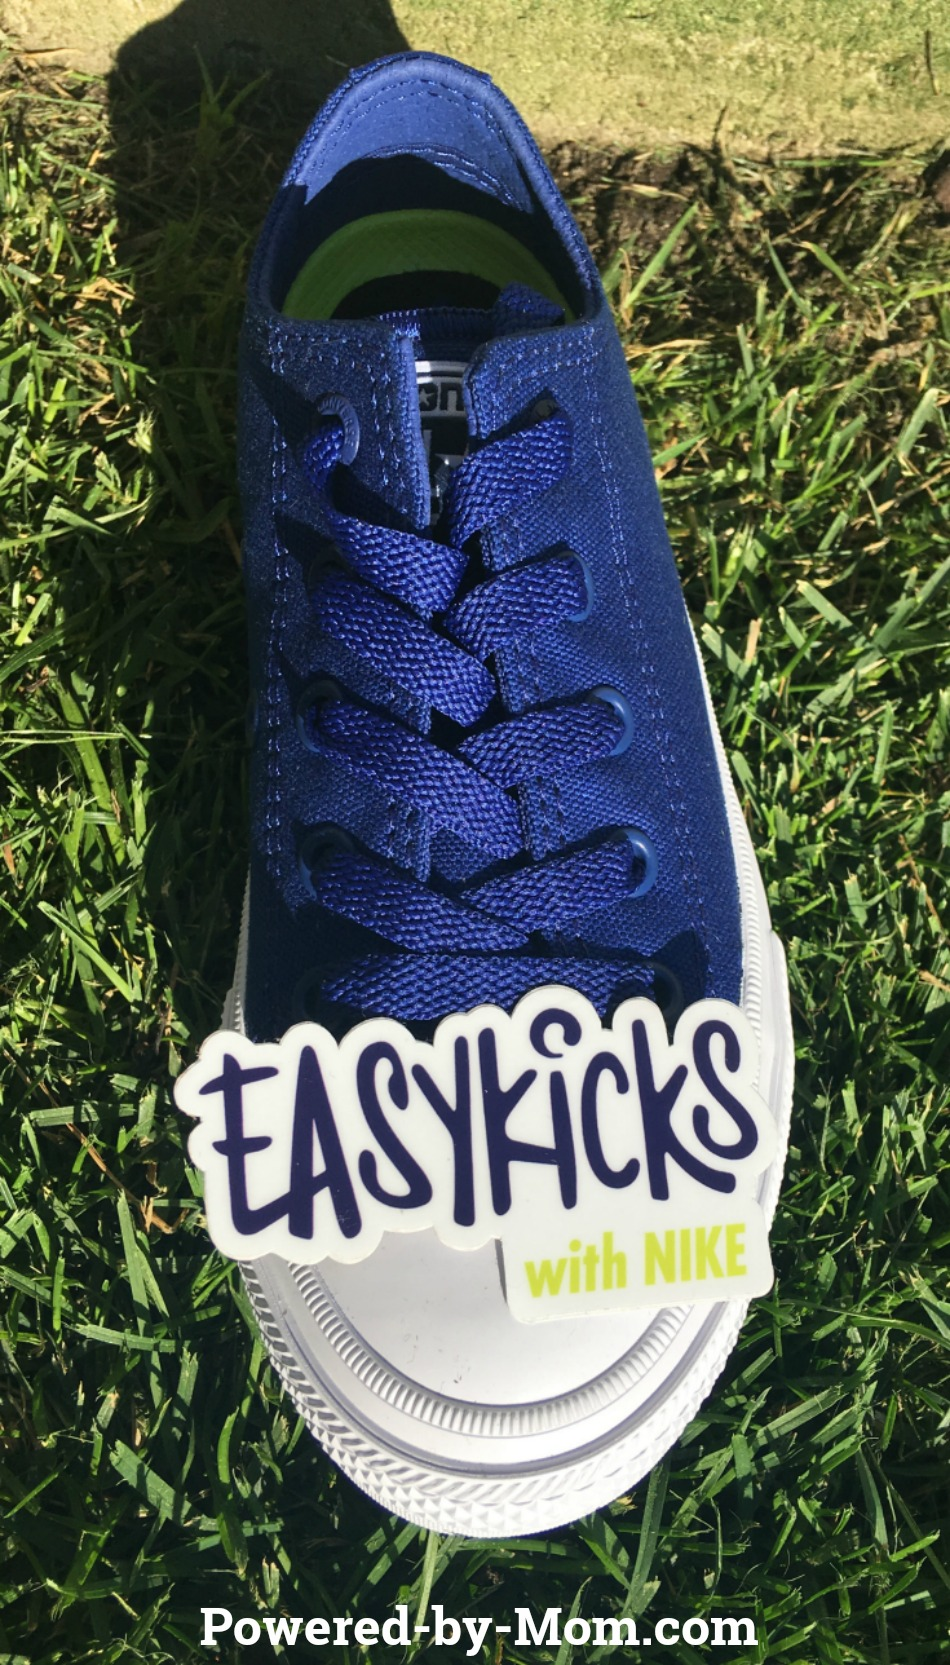 EasyKicks Shoe Subscription Boxes for Kids